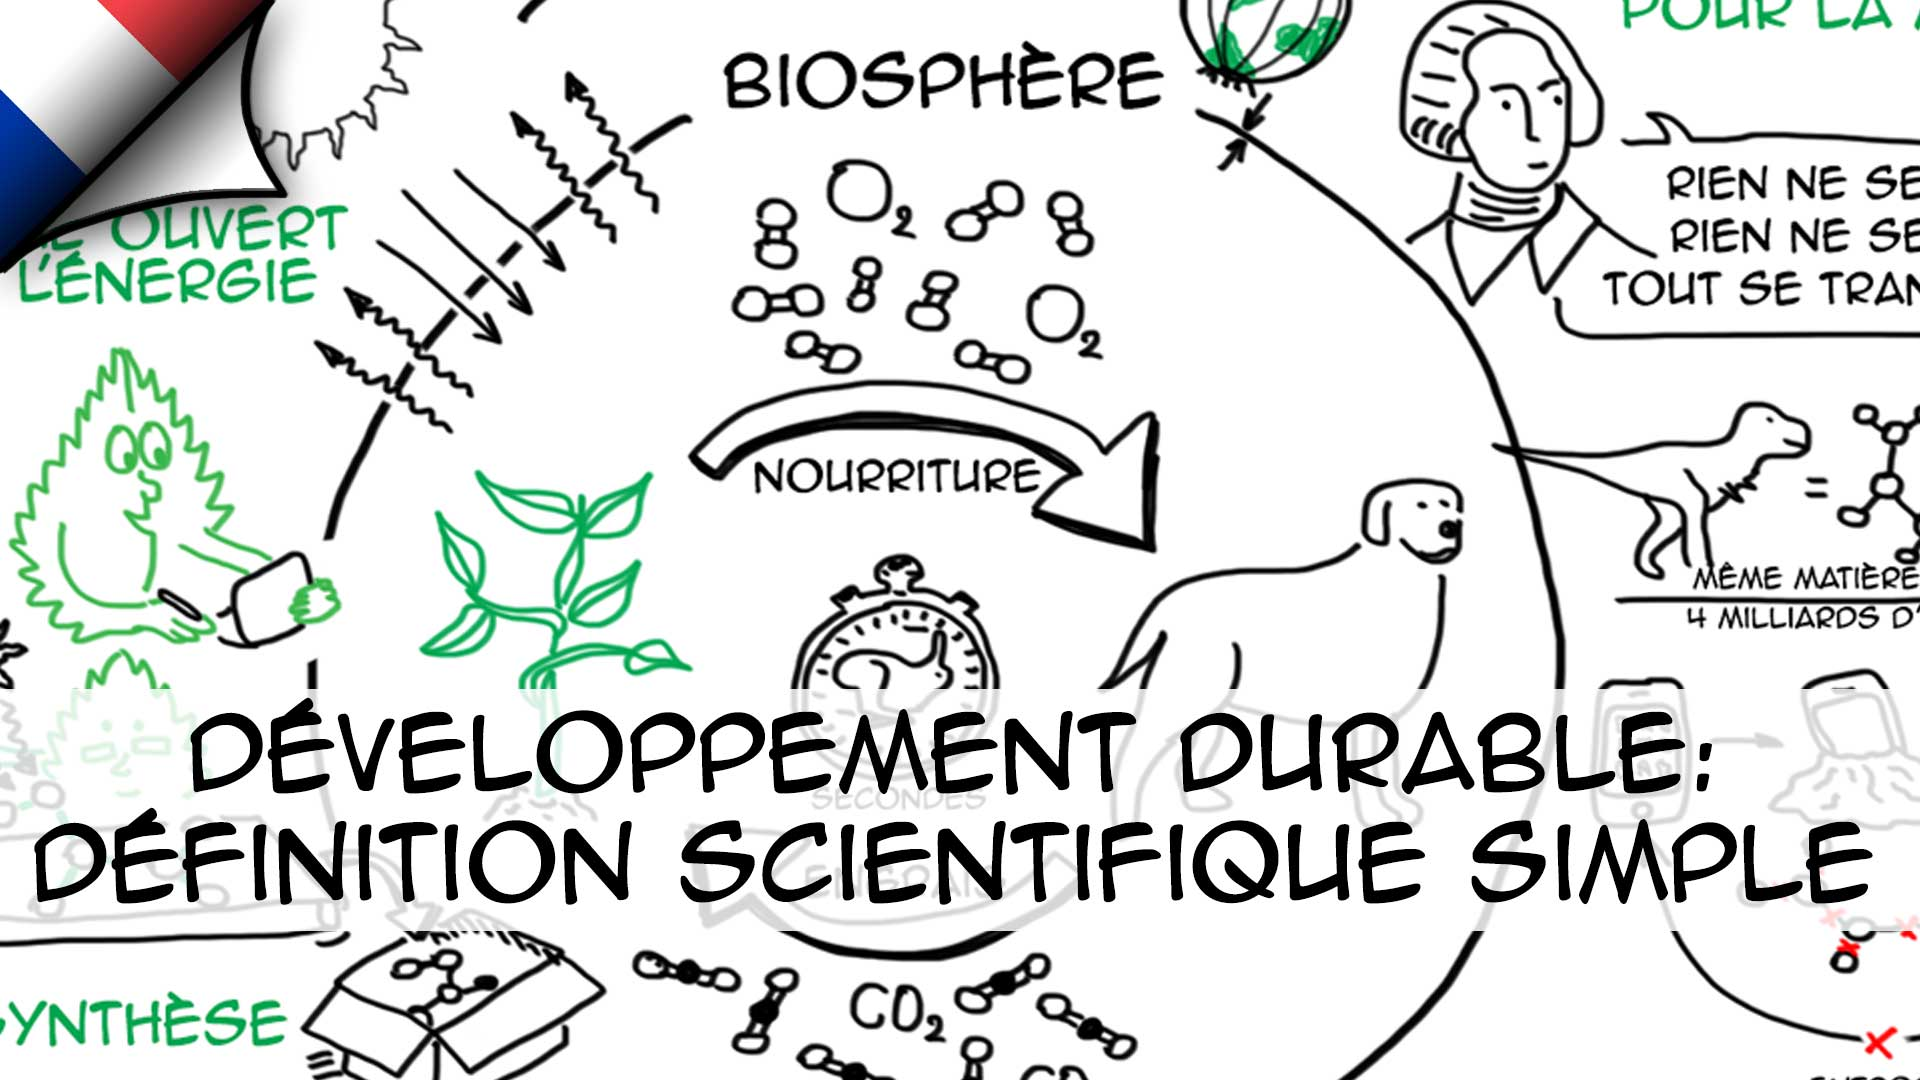 Développement durable: définition scientifique simple (Ep.1)